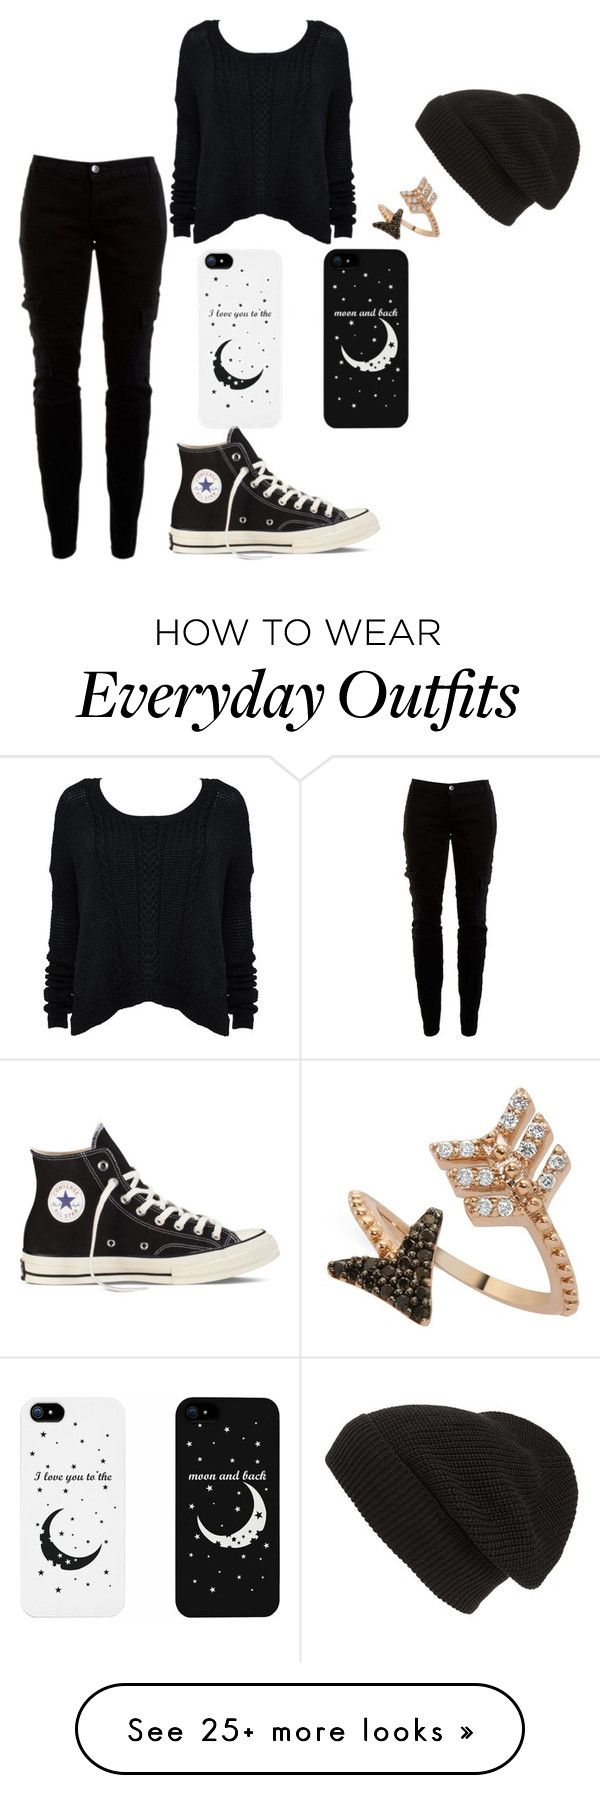 """""""everyday outfit"""" by pinklovebooks on Polyvore featuring Phase 3, Joie, Bee Goddess, Converse, cute and mine"""